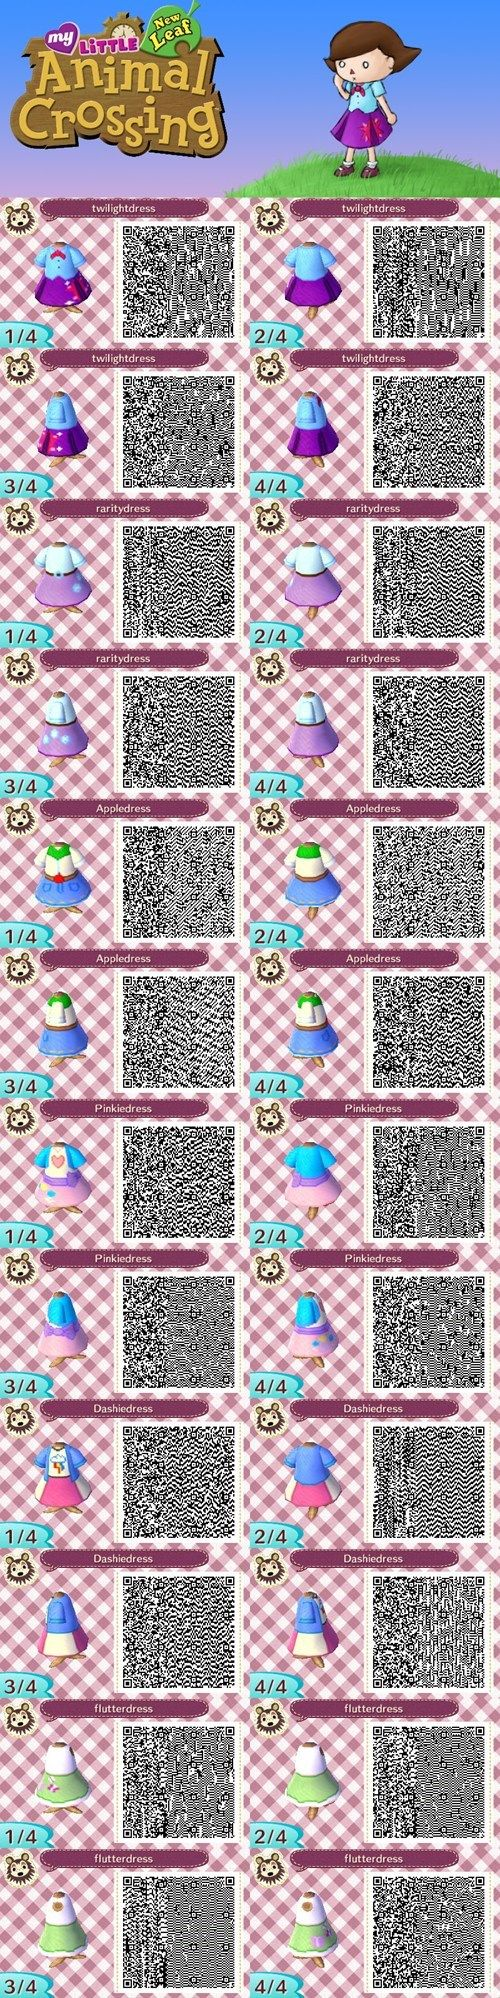 My Little Pony Equestria Girls Animal crossing QR codes-this is a beautiful thing